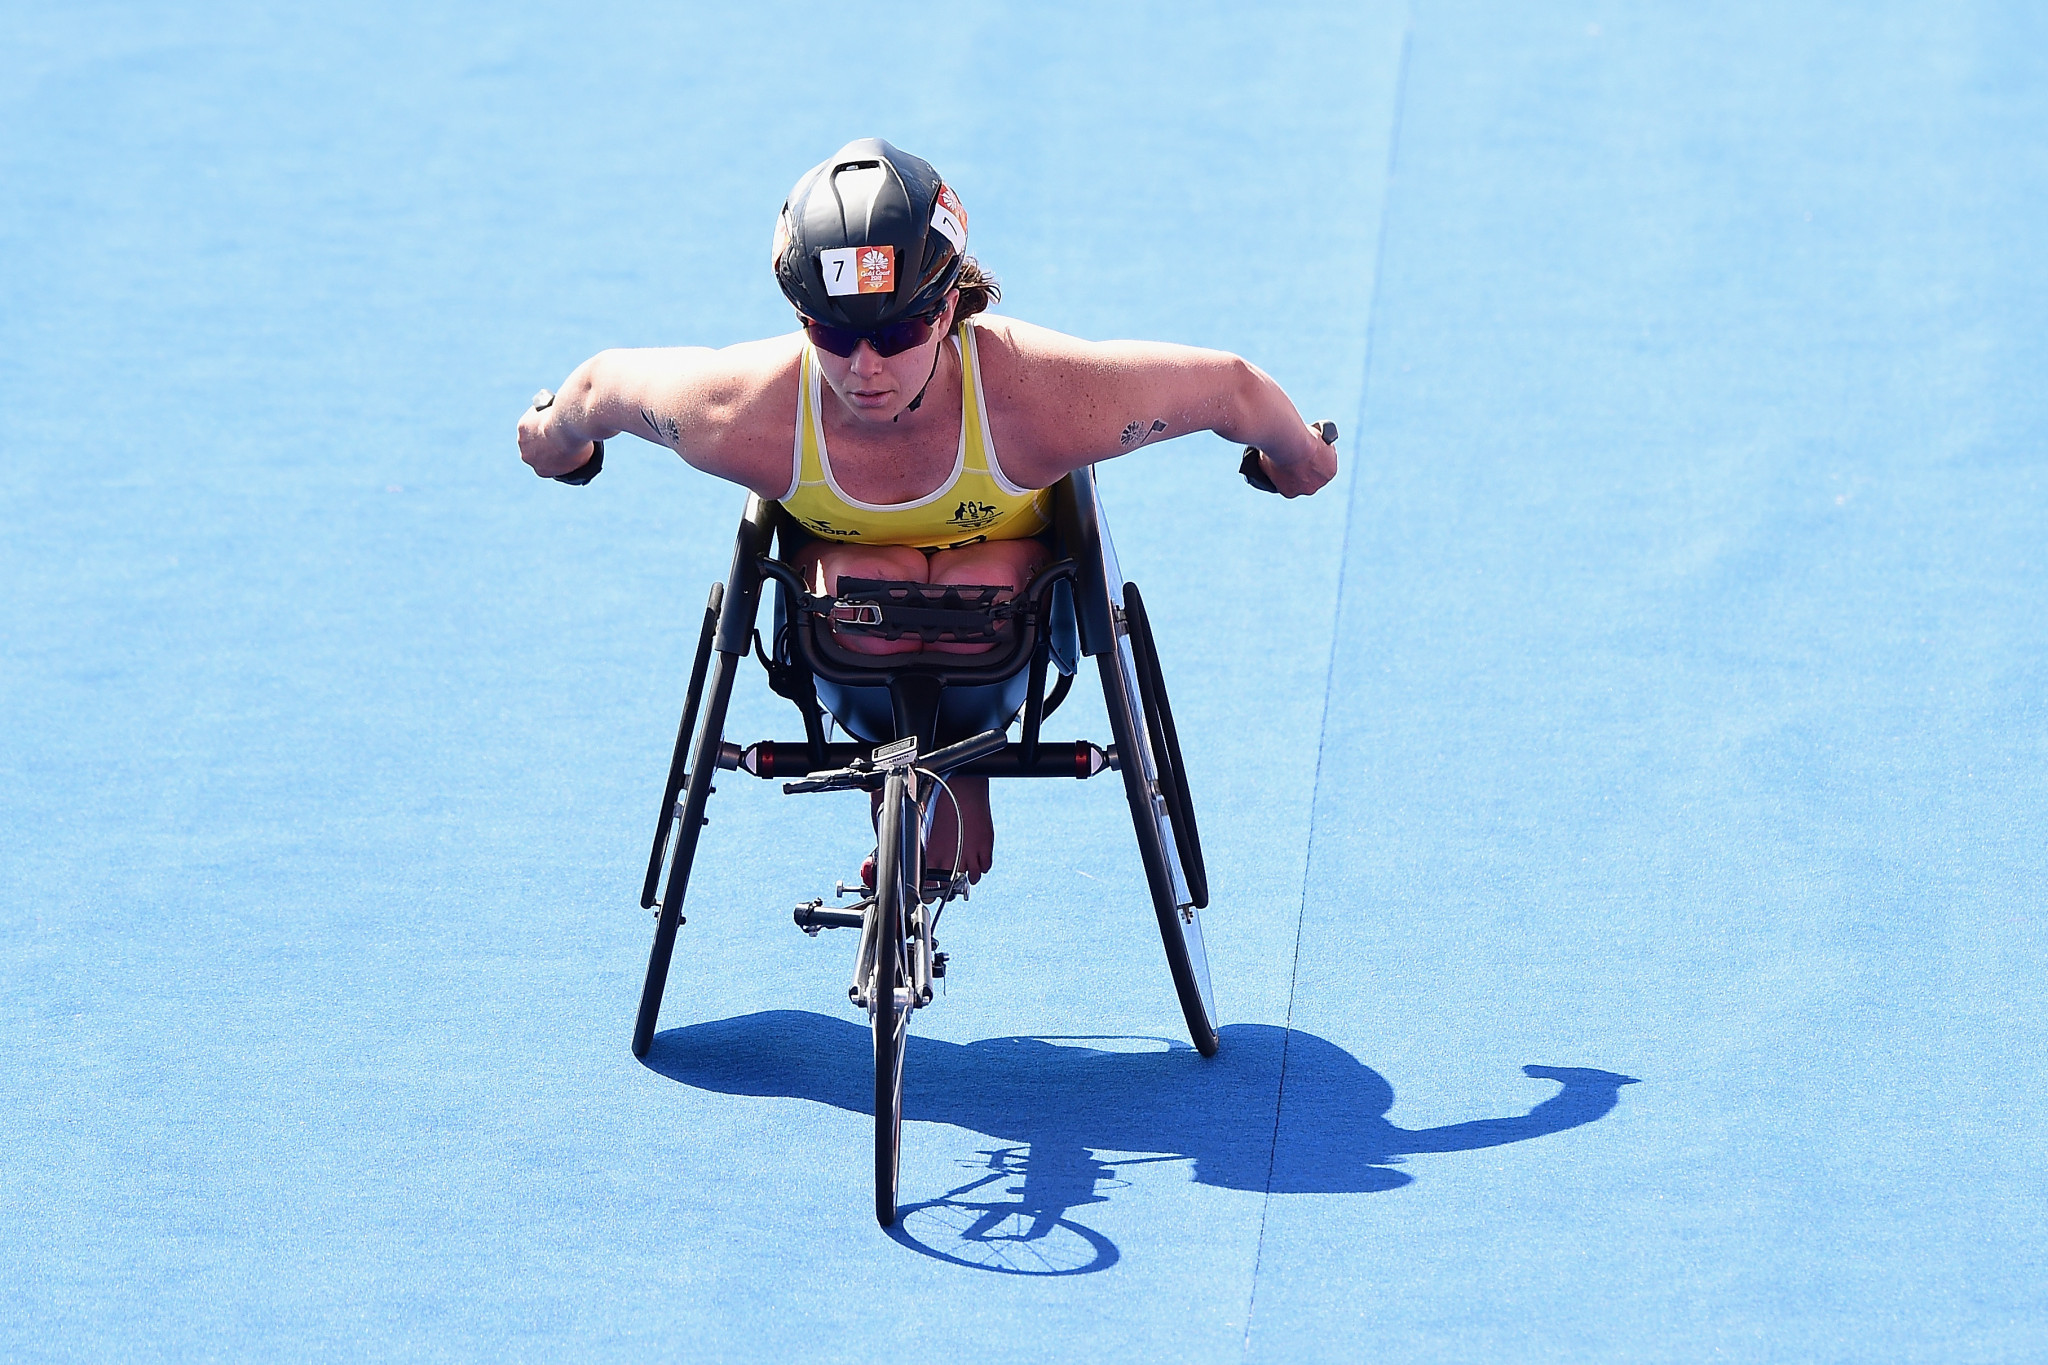 Parker and Beveridge win at Para-Triathlon Oceania Championships in Australia